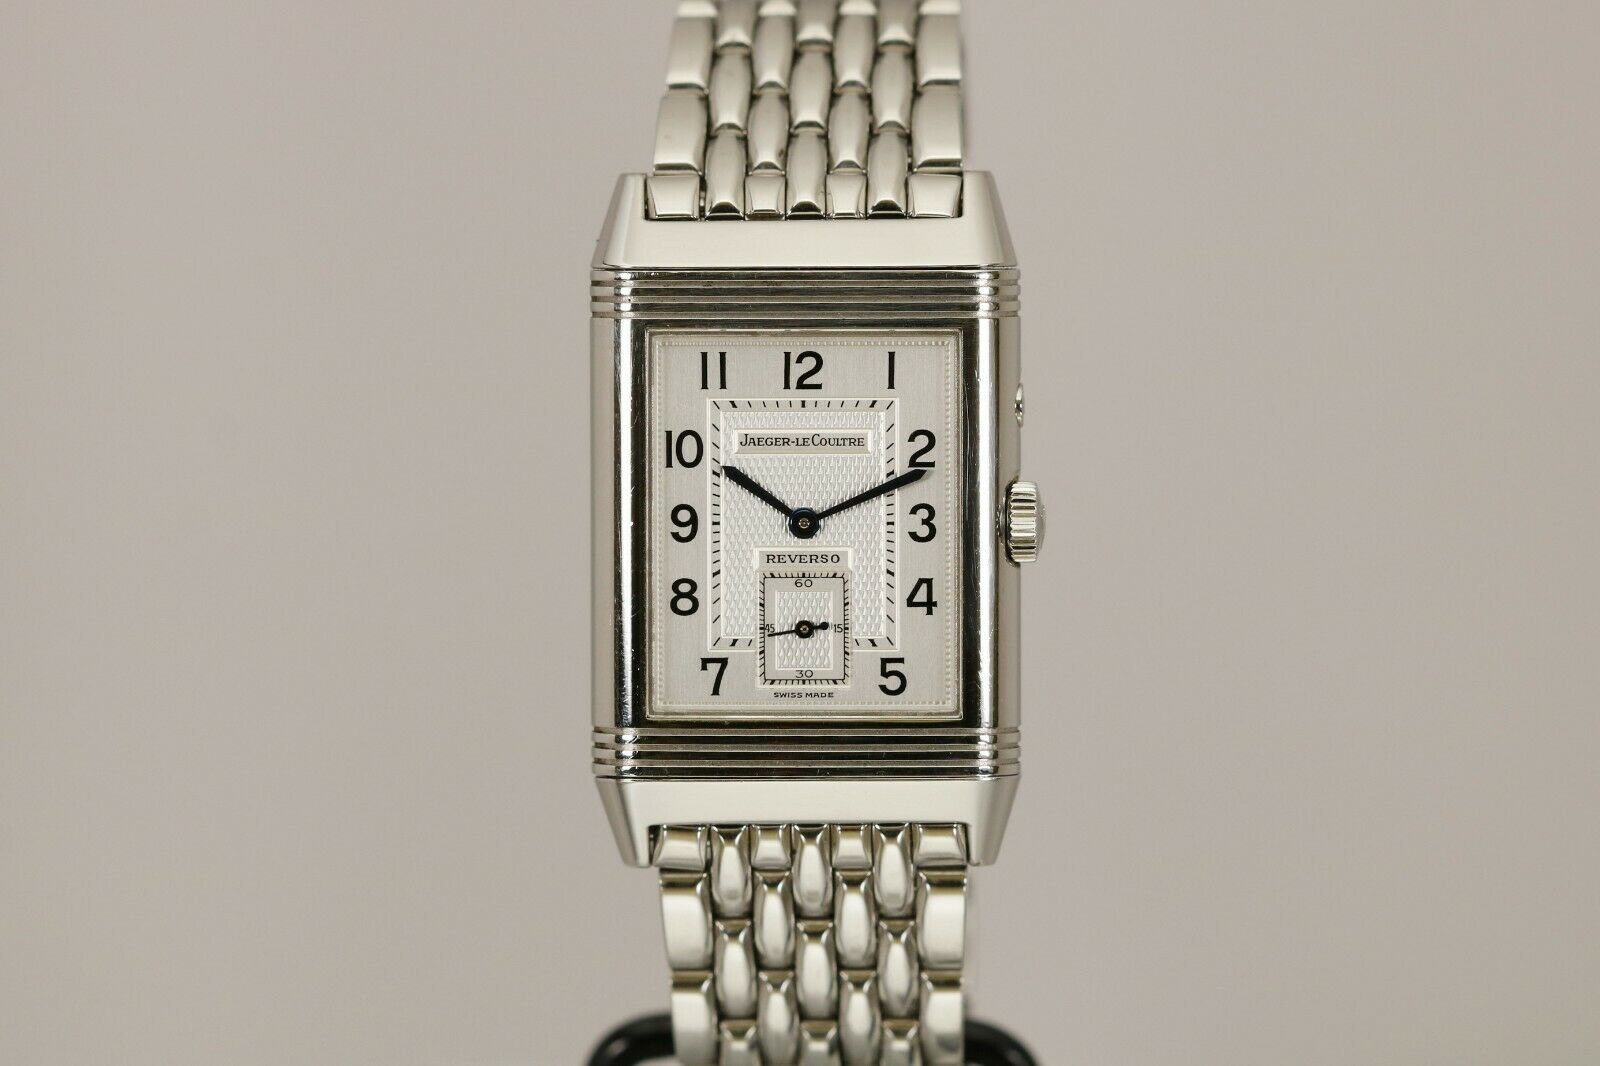 Jaeger LeCoultre Reverso Duo Day Night Stainless Steel Mechanical Watch 270.8.54 - watch picture 1